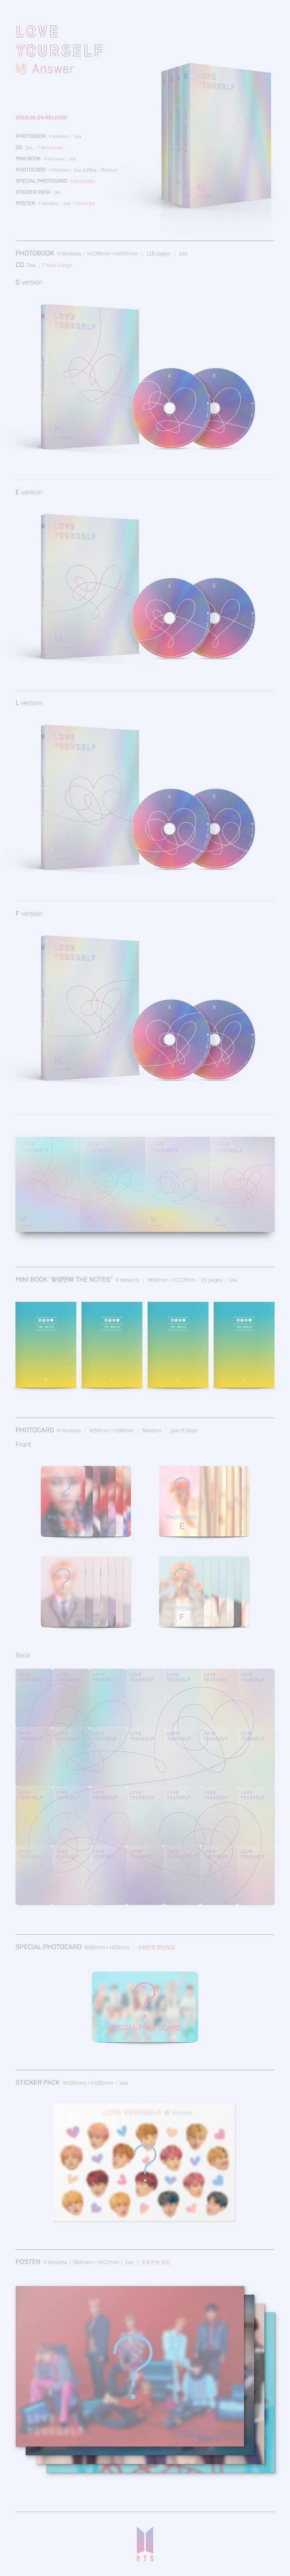 bts loveyourselfanswer contents